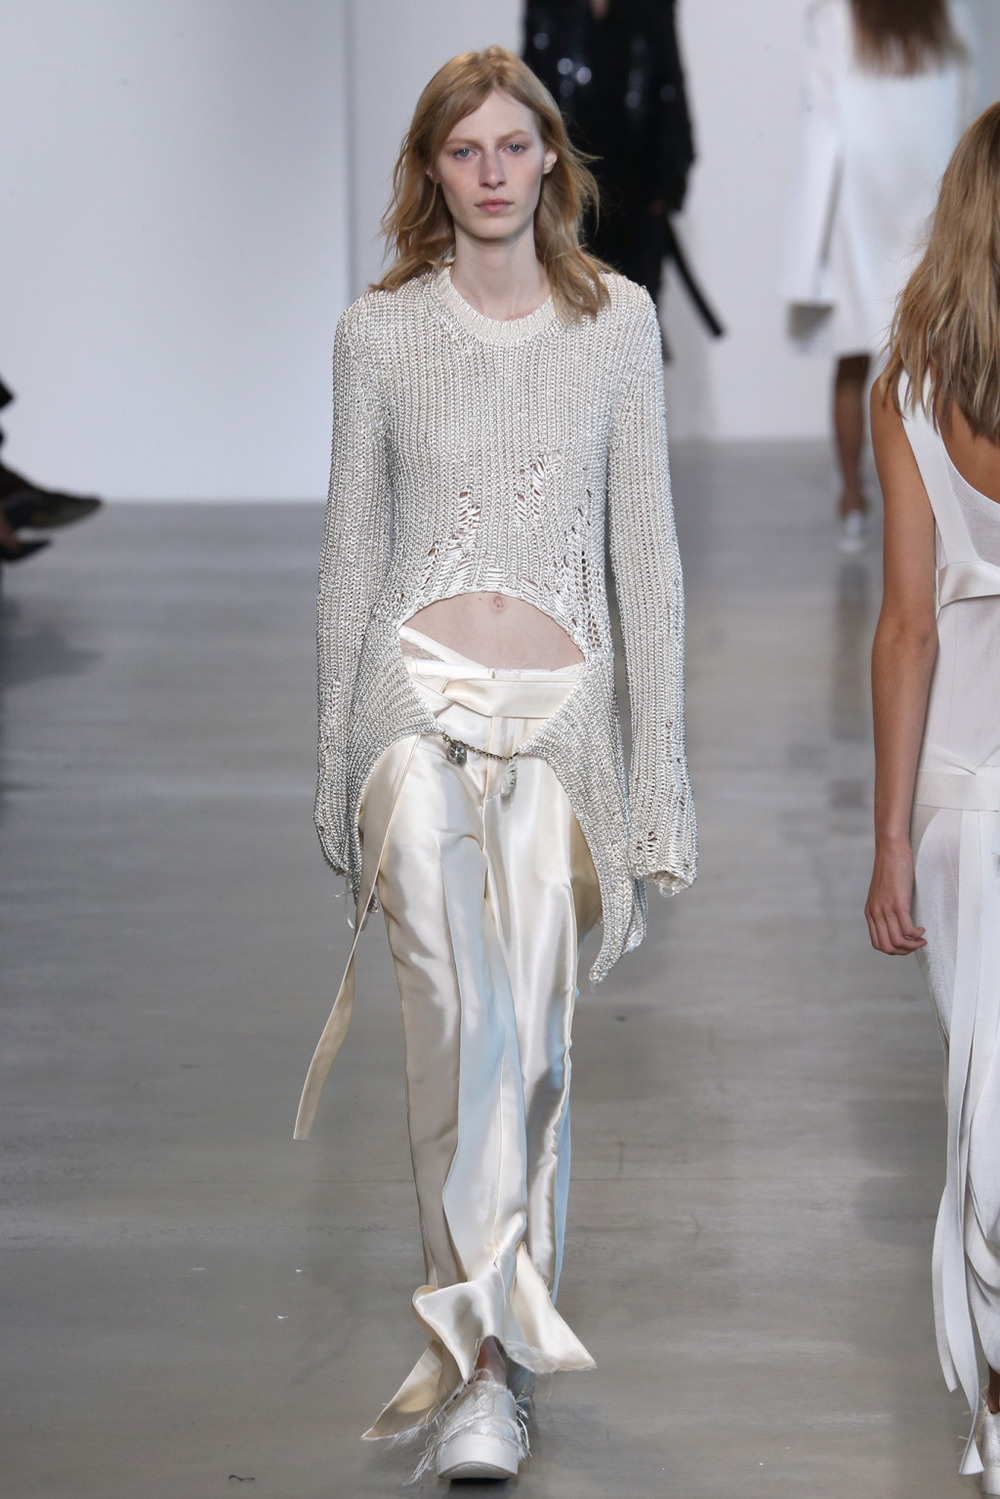 Machine Knit Jacket //  Calvin Klein Ready-To-Wear 2016 // NY, NY   Machine Knitting Production   Photo courtesy of  WWD